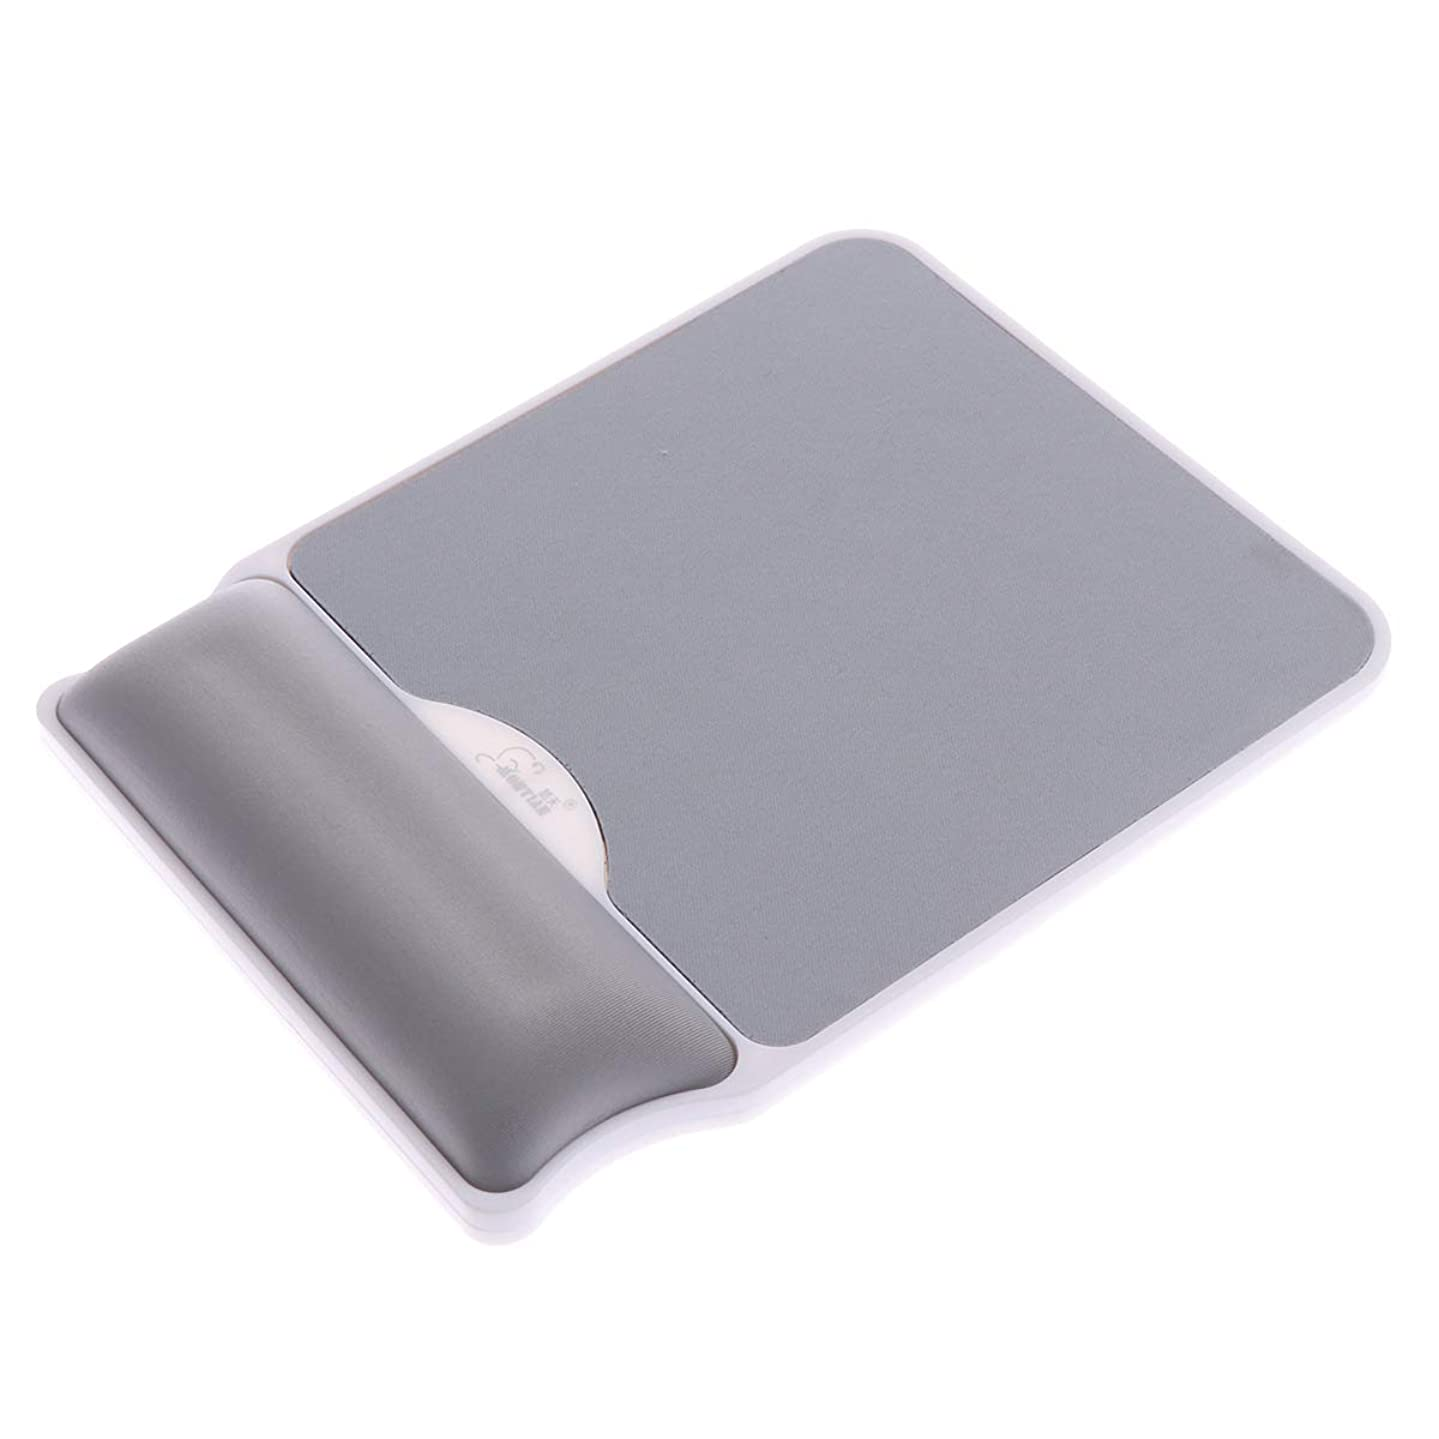 OSALADI Slow Rebound Memory Foam Cushion Wrist Rest Mouse Pad for Game Office (Silver Grey)